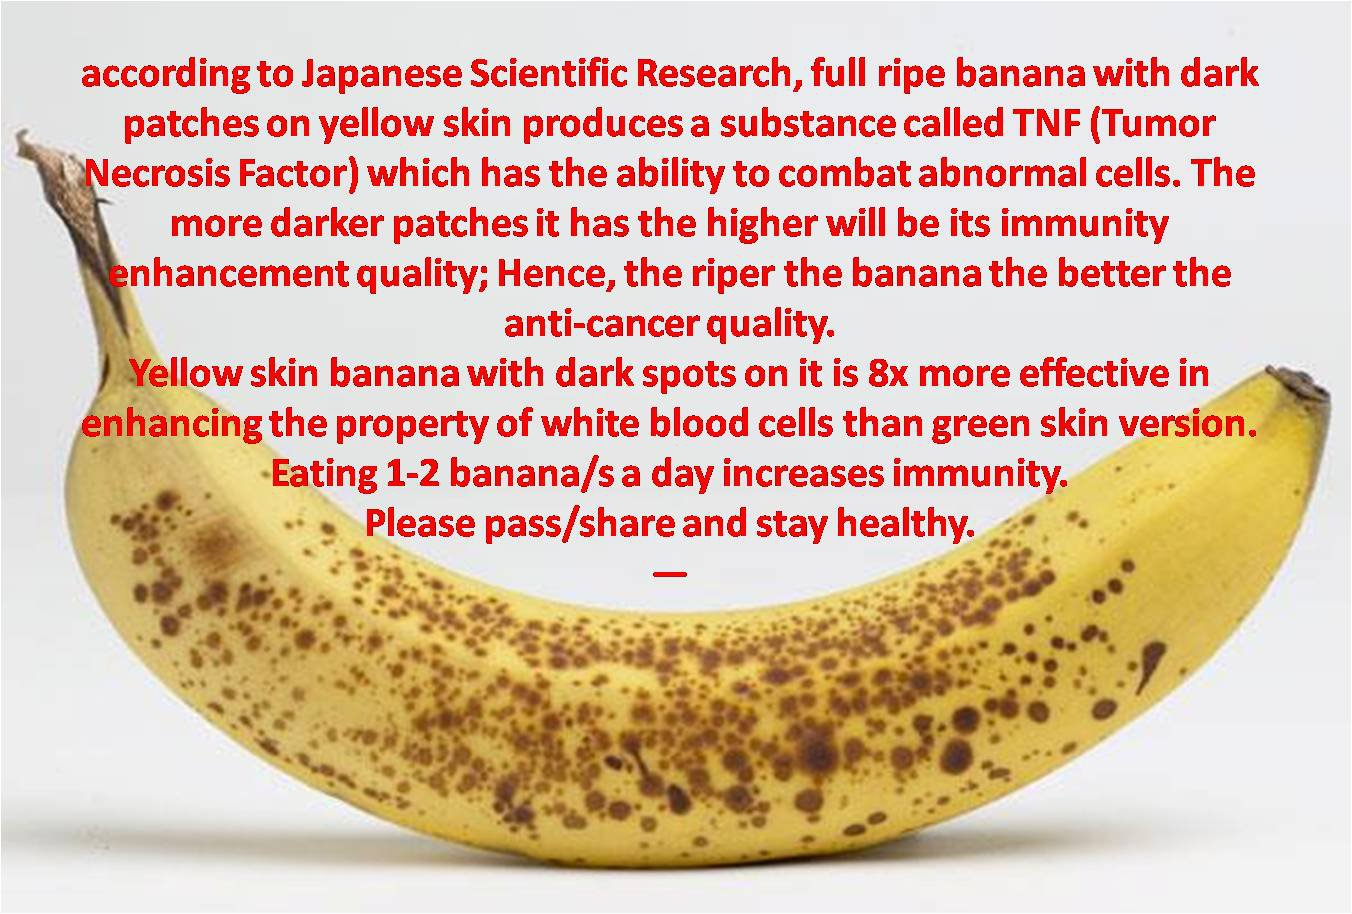 banana research A banana is the common name for a type of fruit and also the name for the herbaceous plants that grow it these plants belong to the genus musa  they are native to the tropical region of.